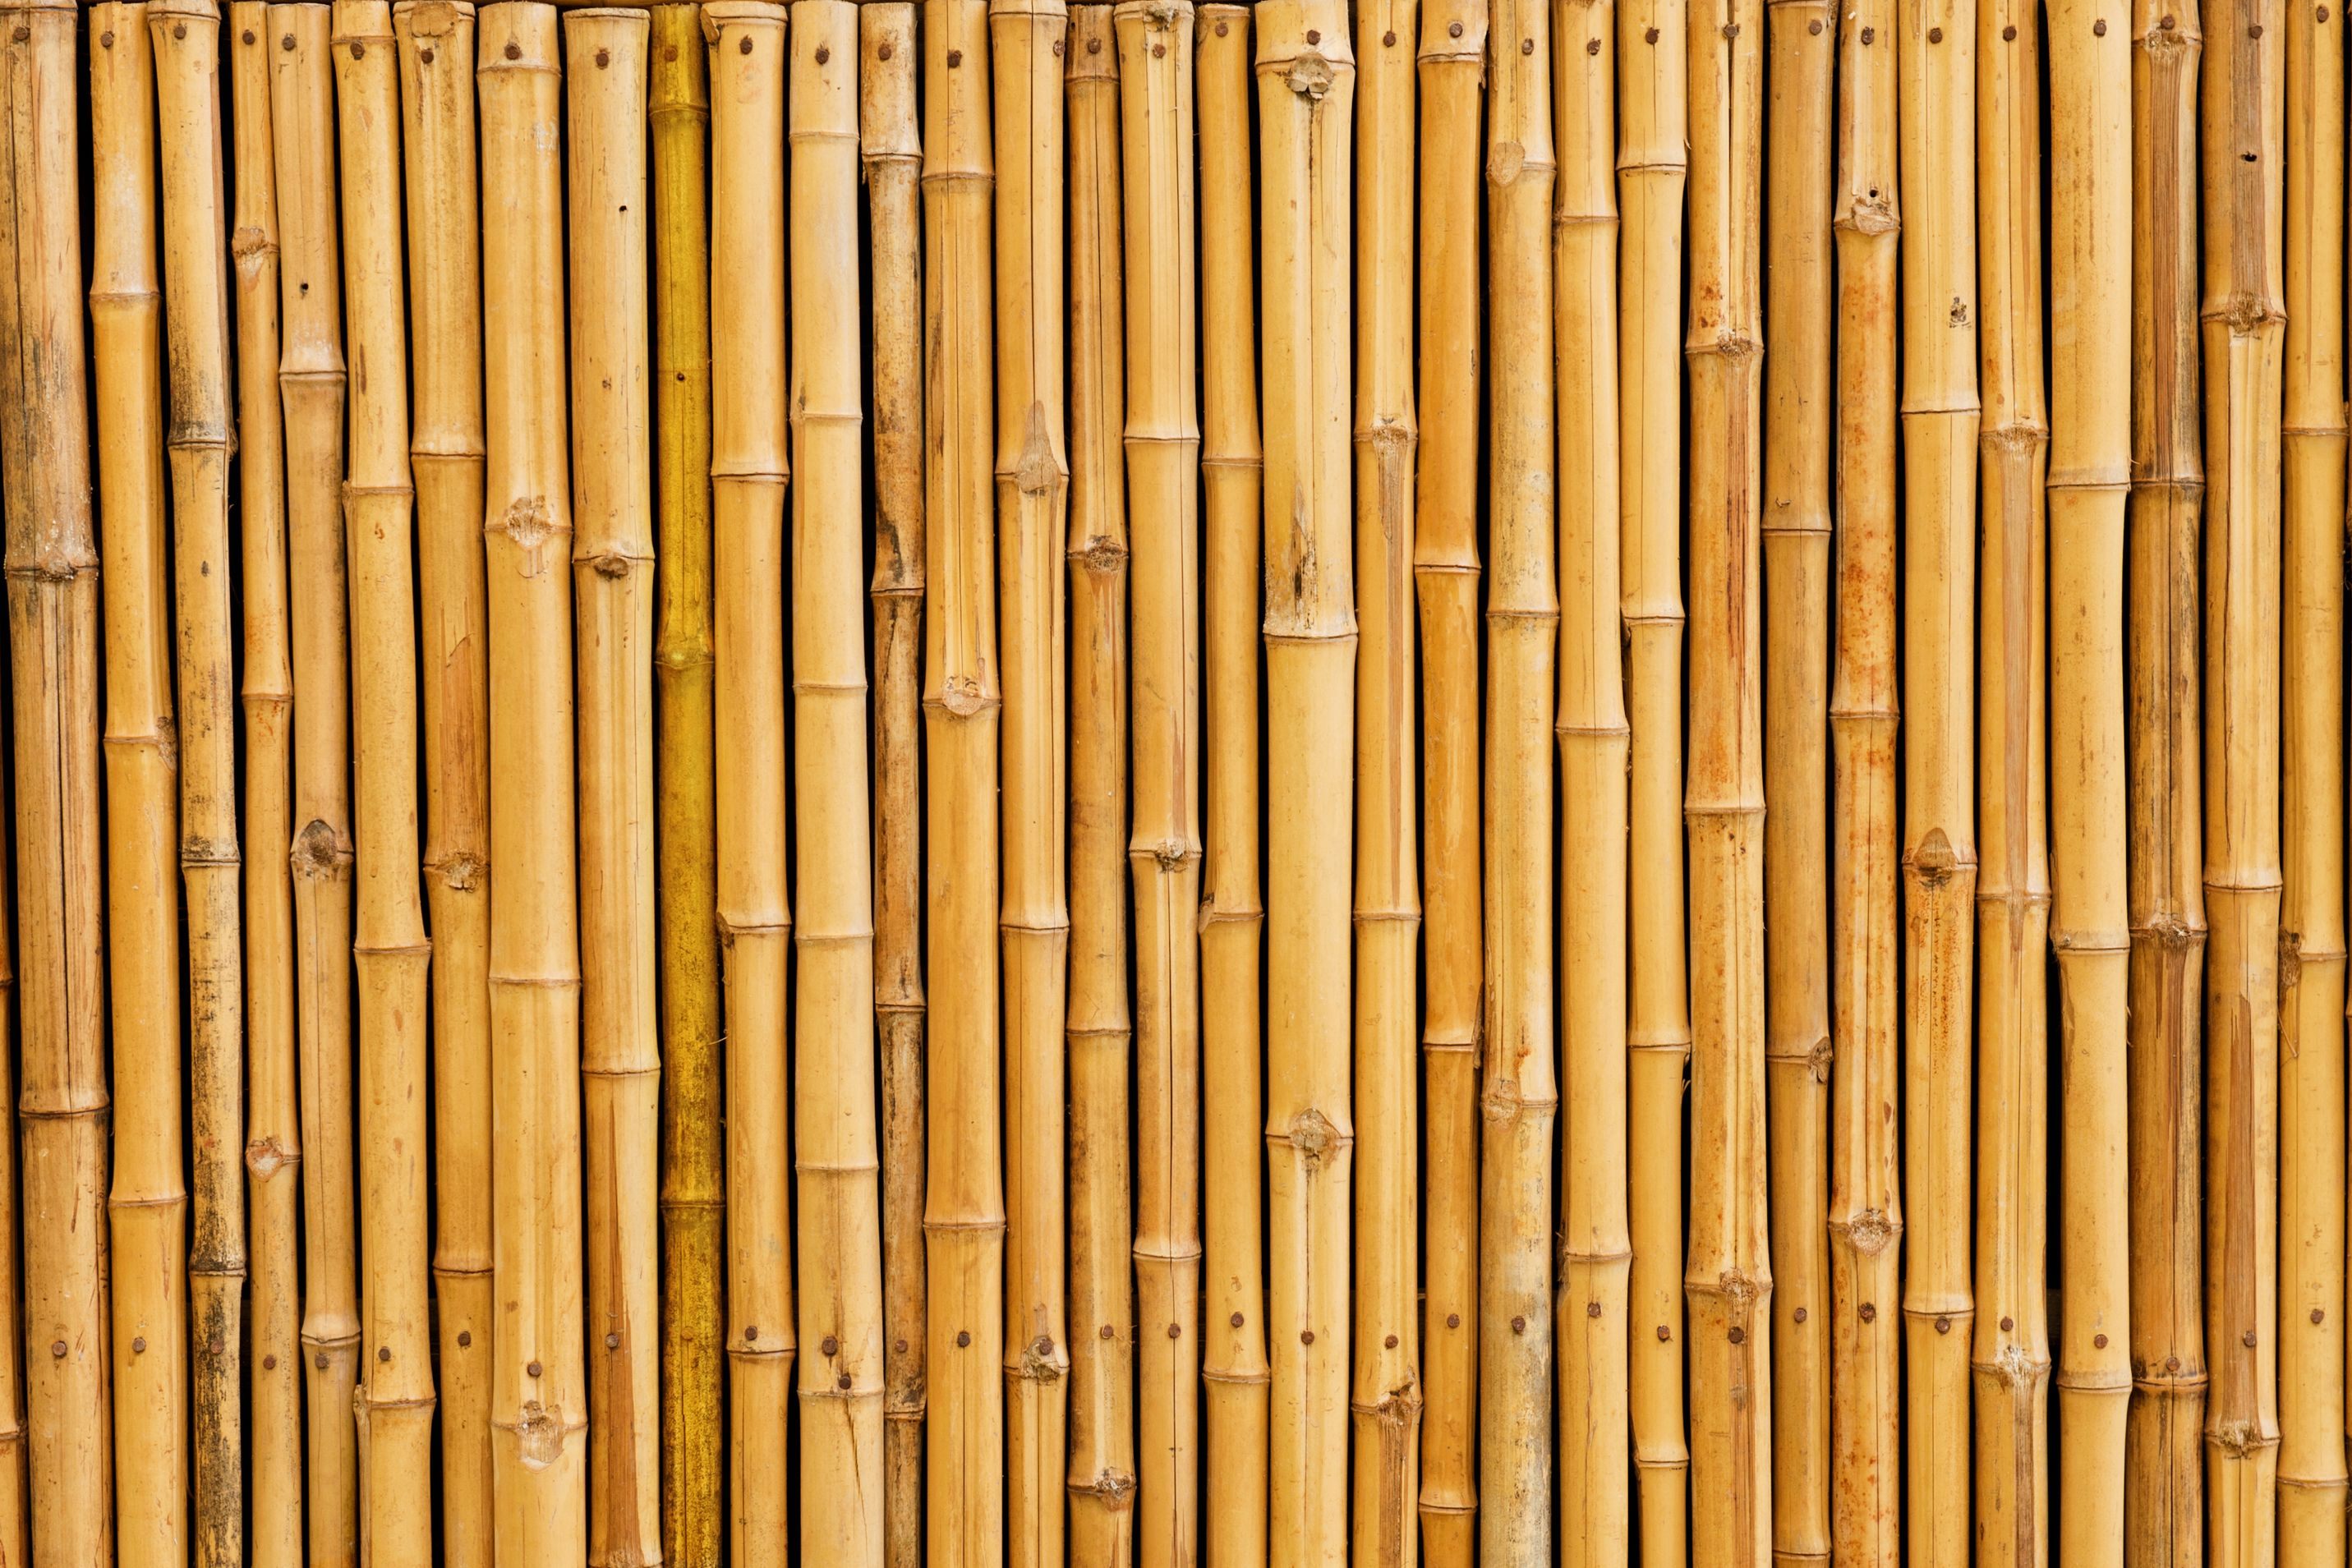 Multi Use Bamboo Surface Protector Bamboo Fence Wooden Fence